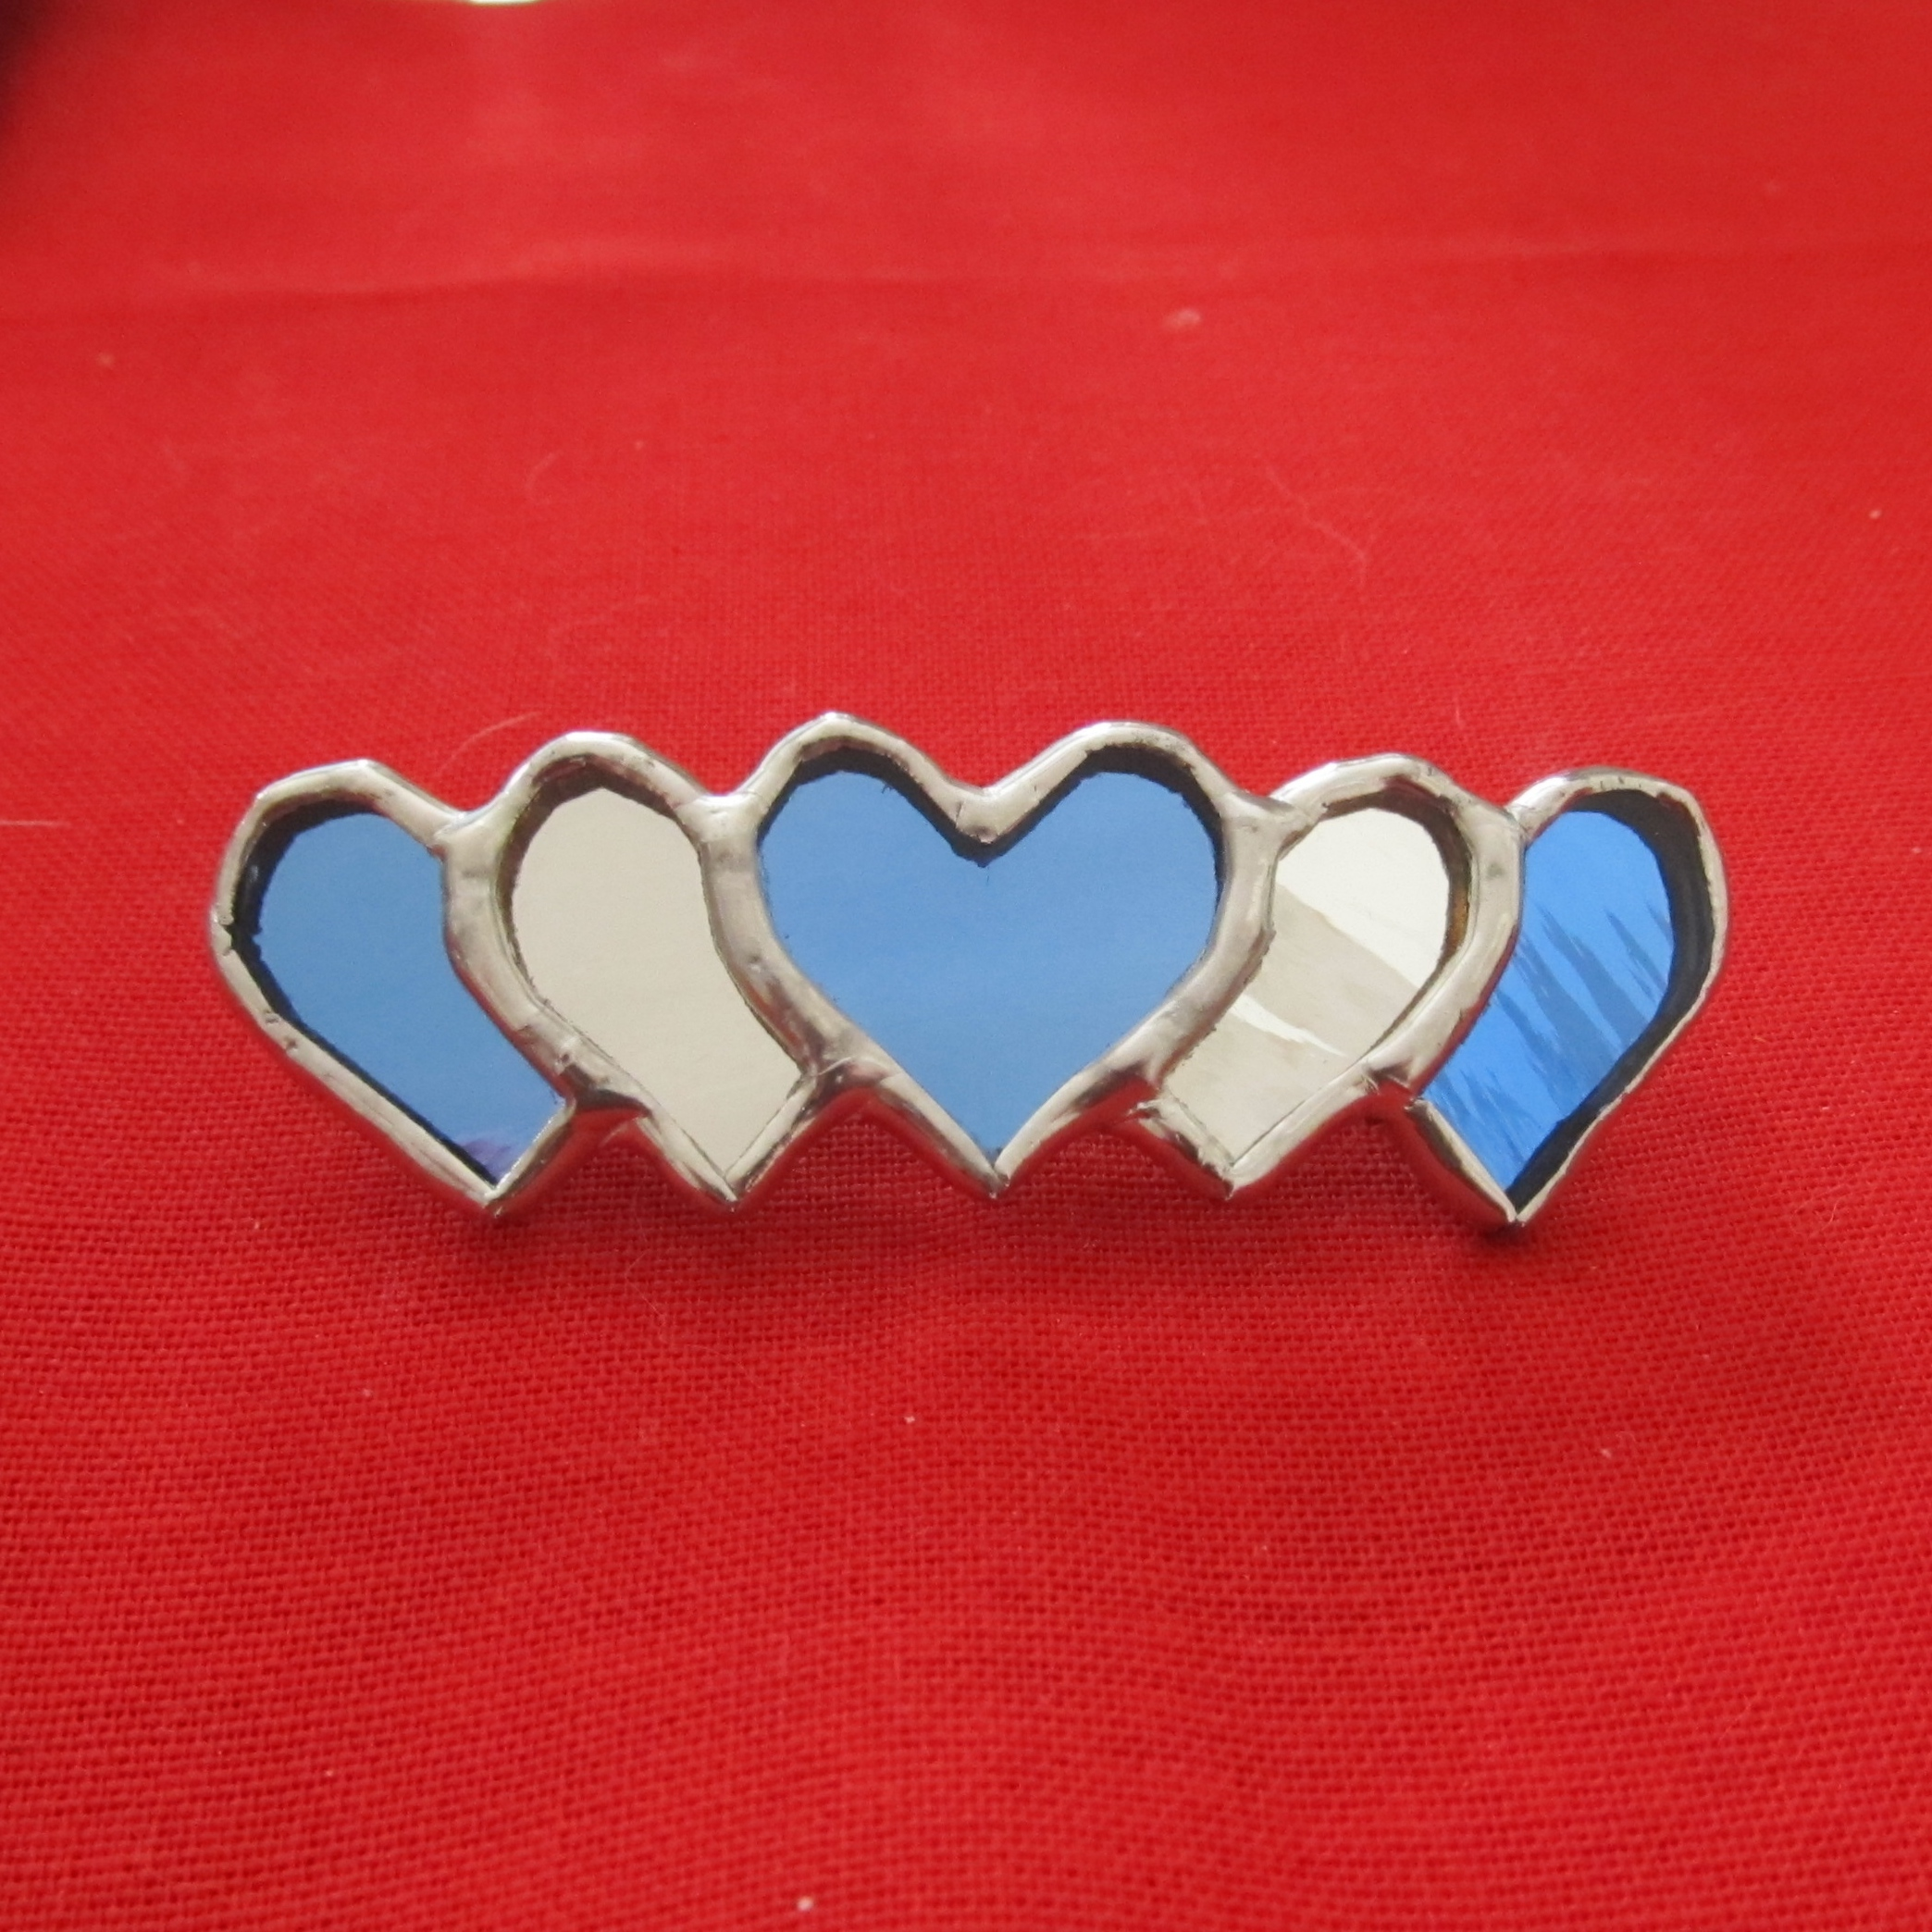 Barrette - Mirror Blue Heart - 60 mm